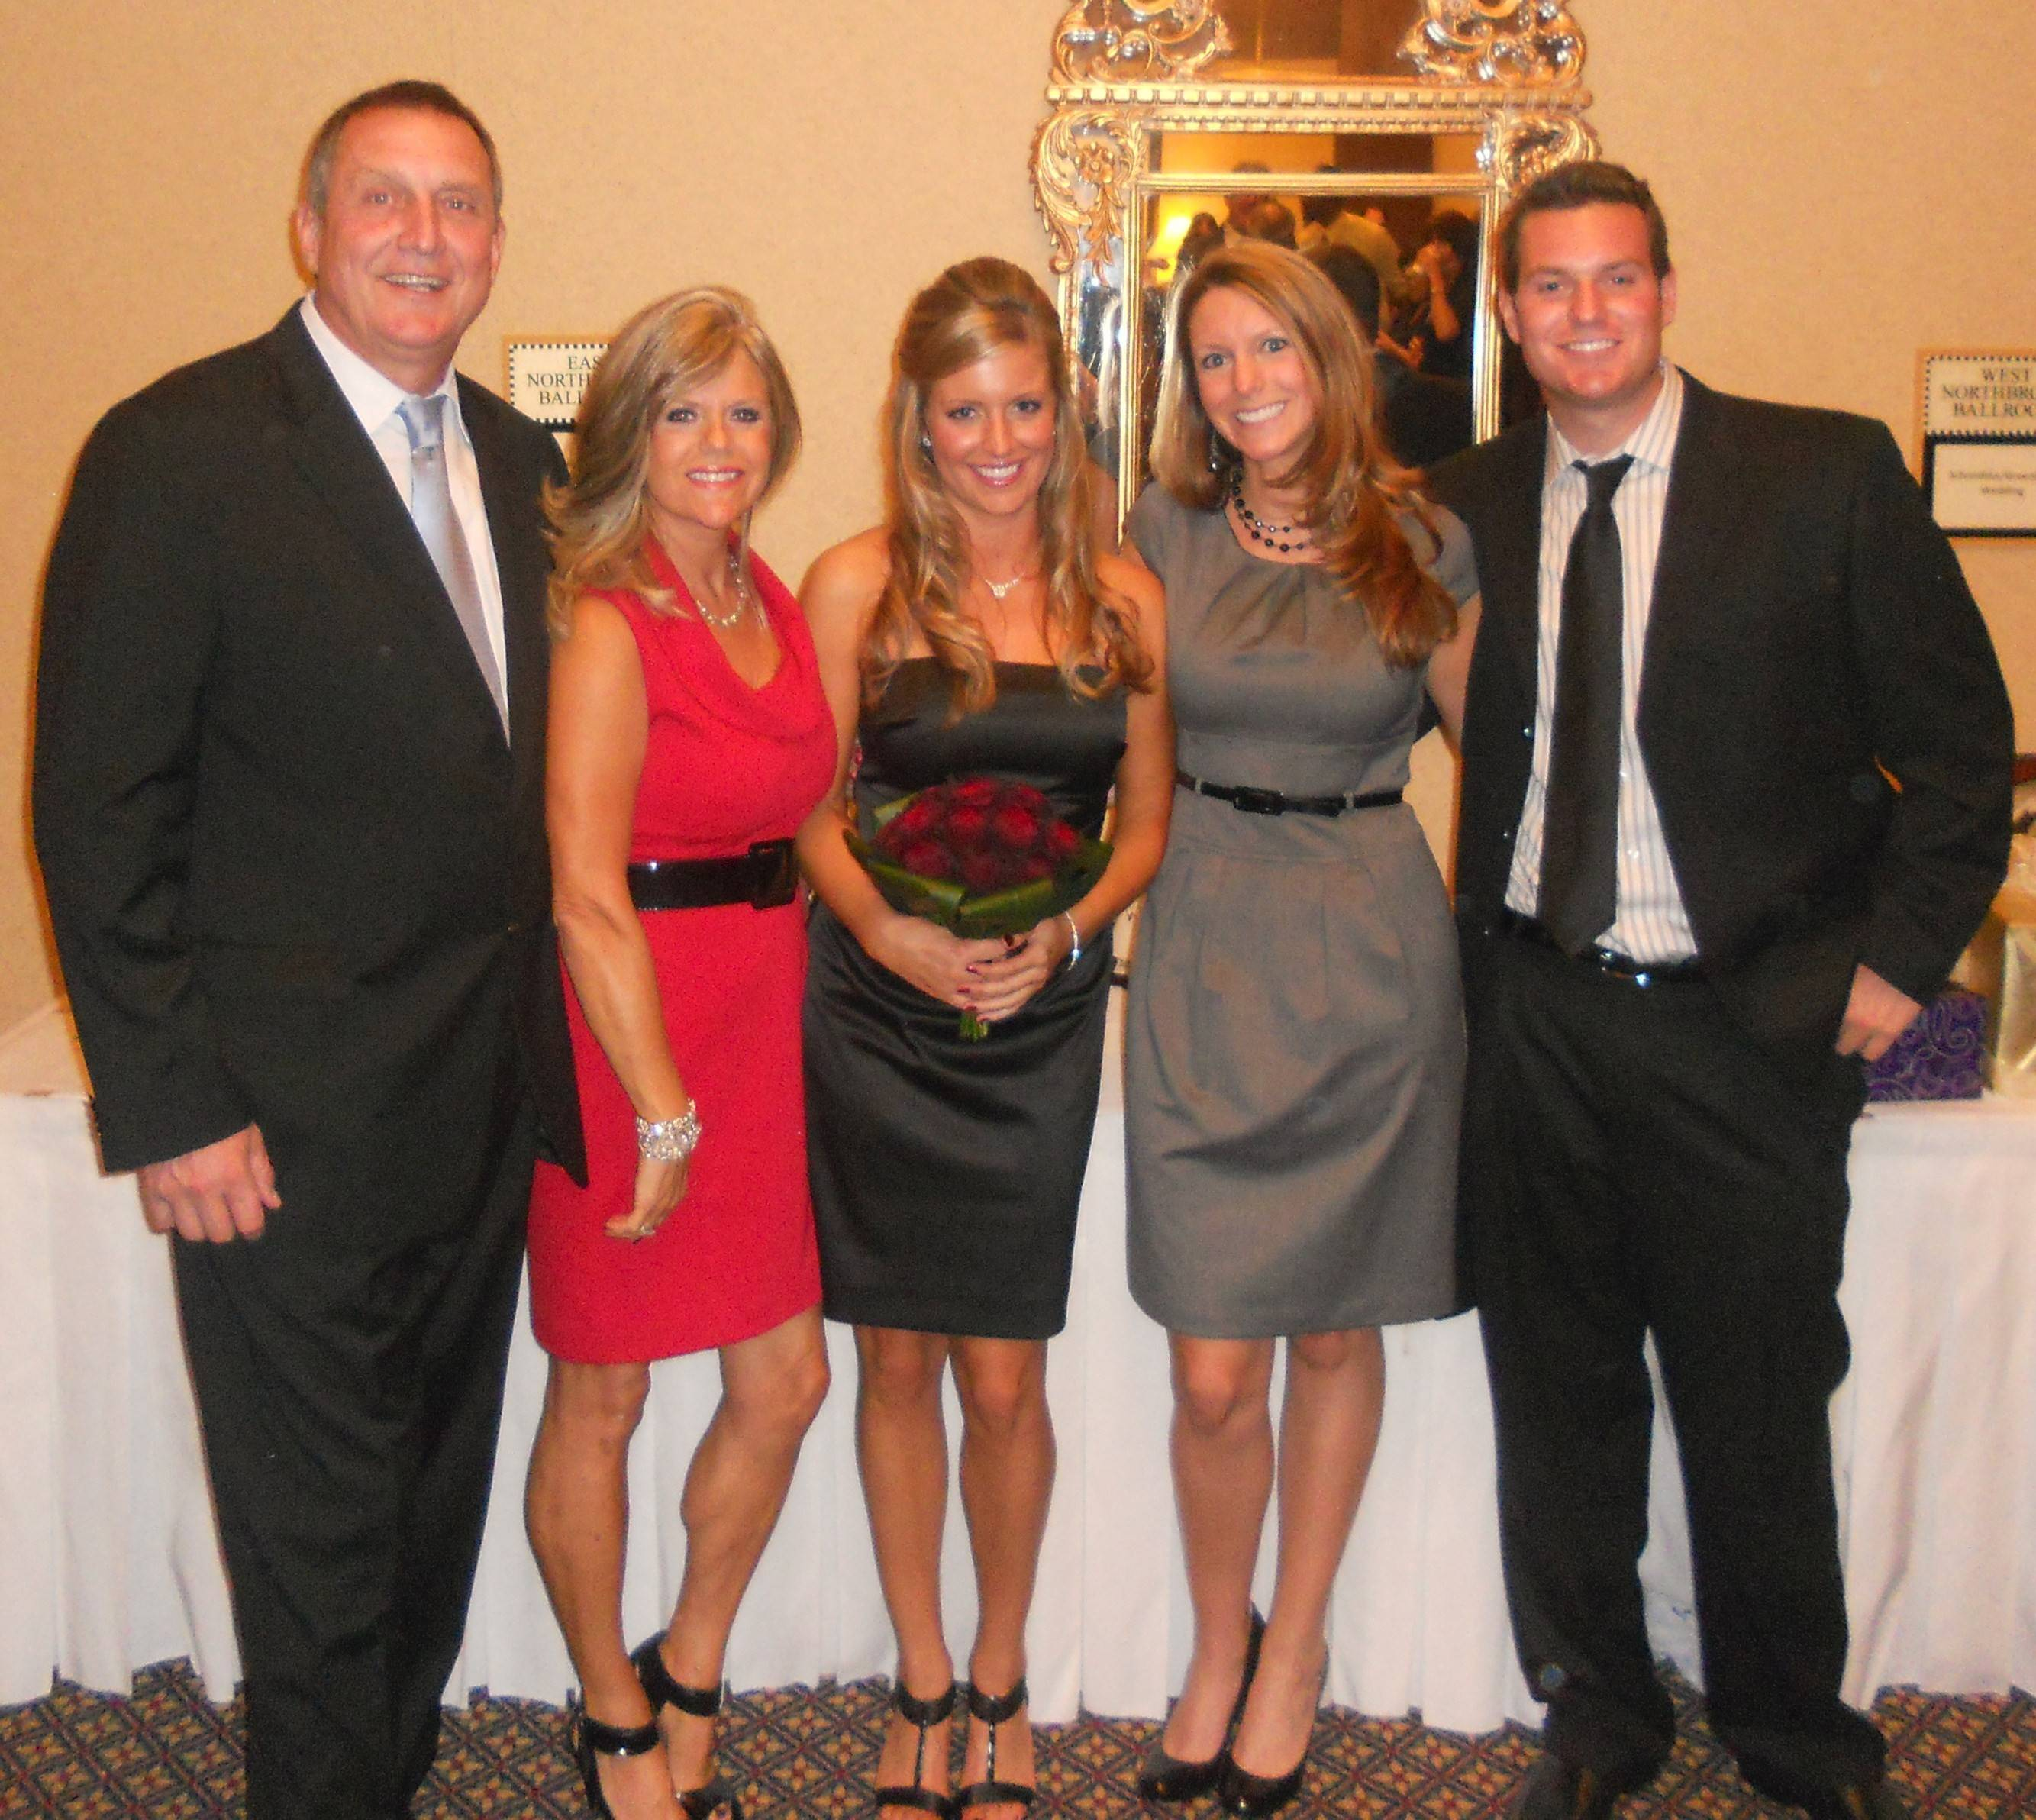 Ryan Flannigan, far right, with his parents, Timothy and Debra, and sisters Courtney and Carly